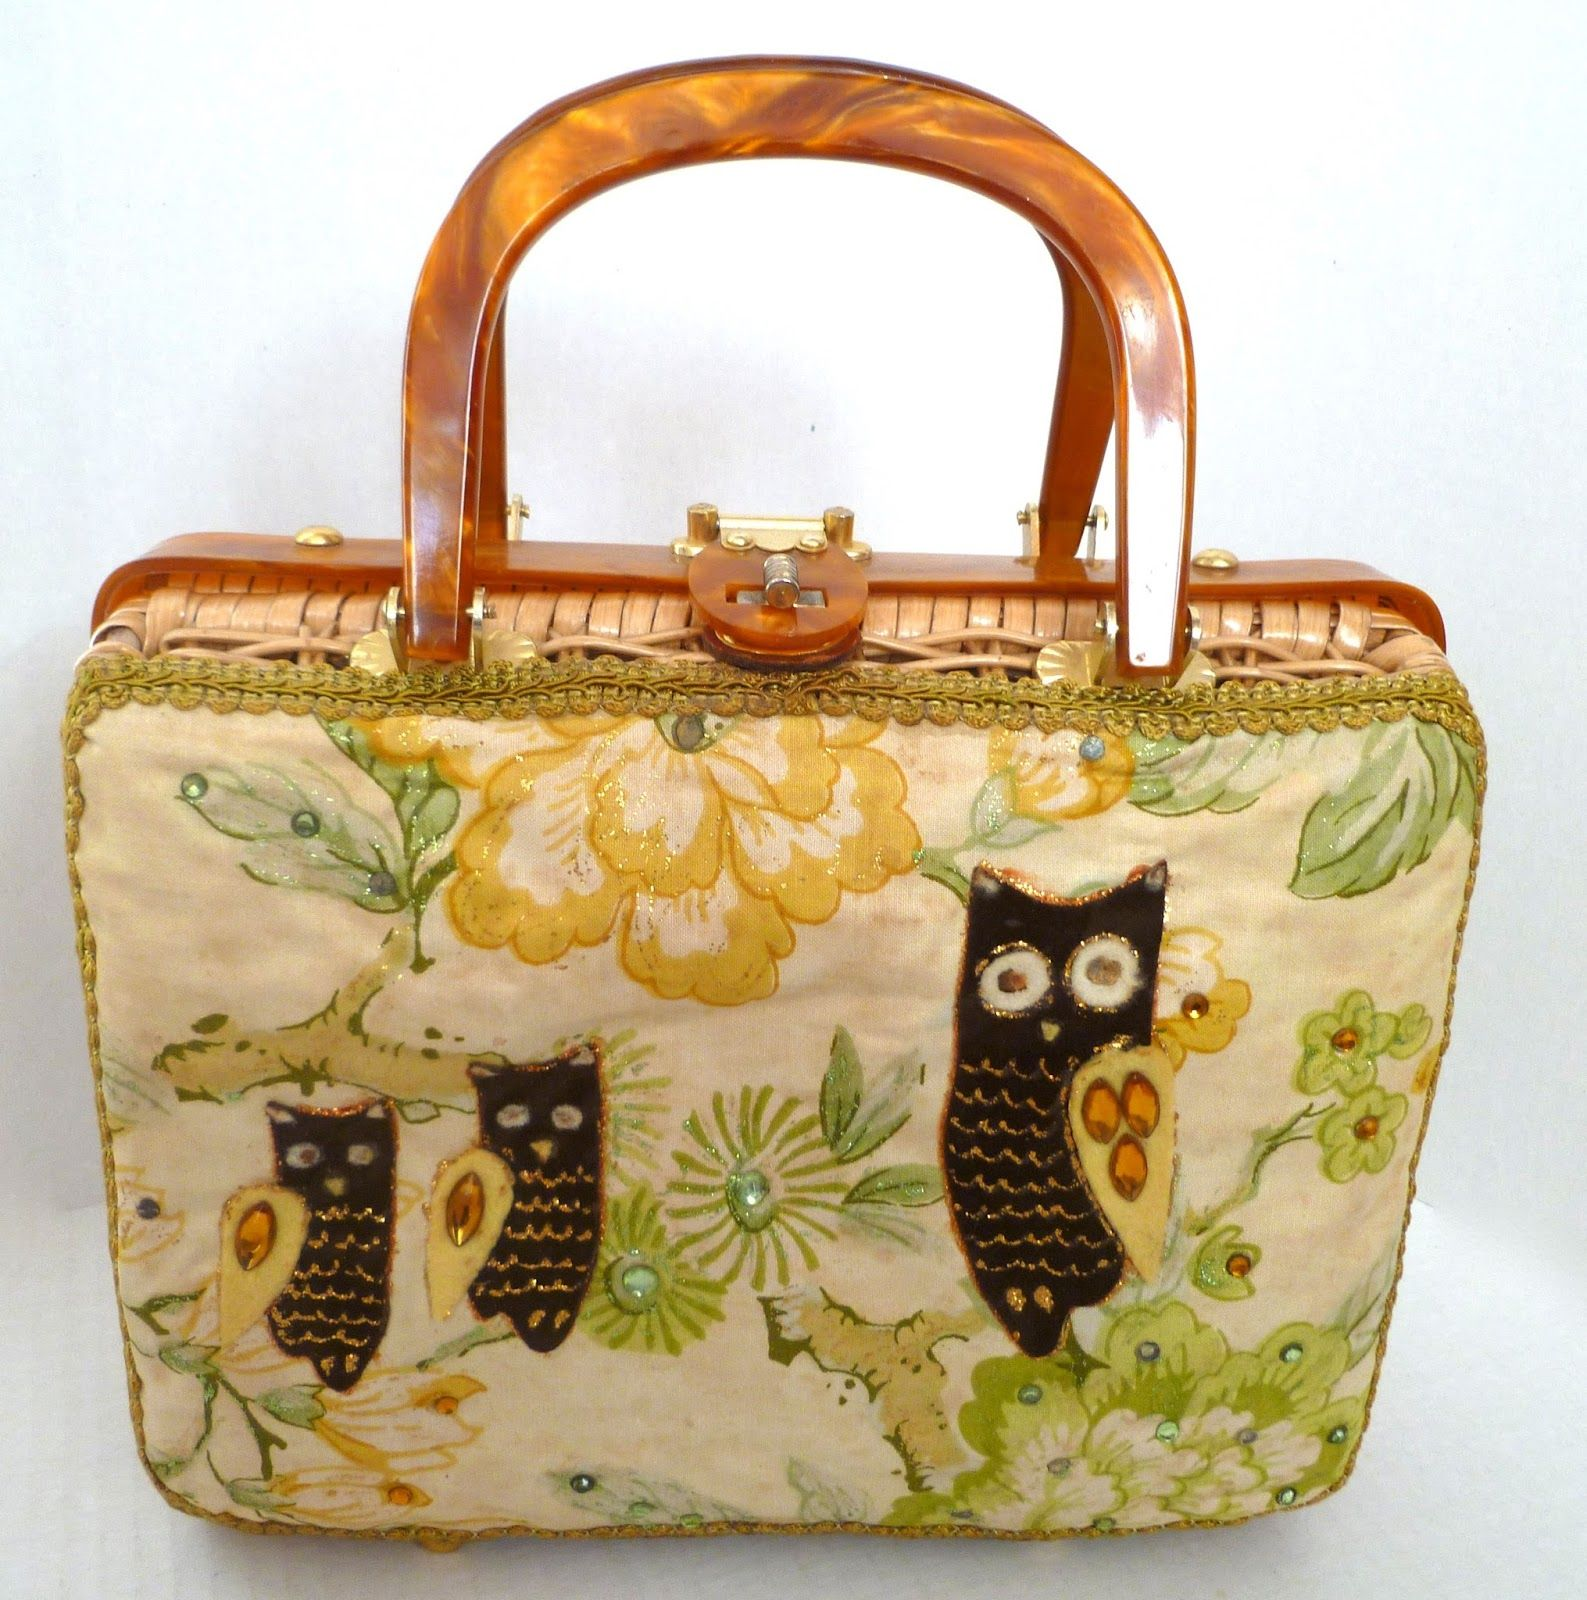 1960s Lily-Bet wicker purse with owls.